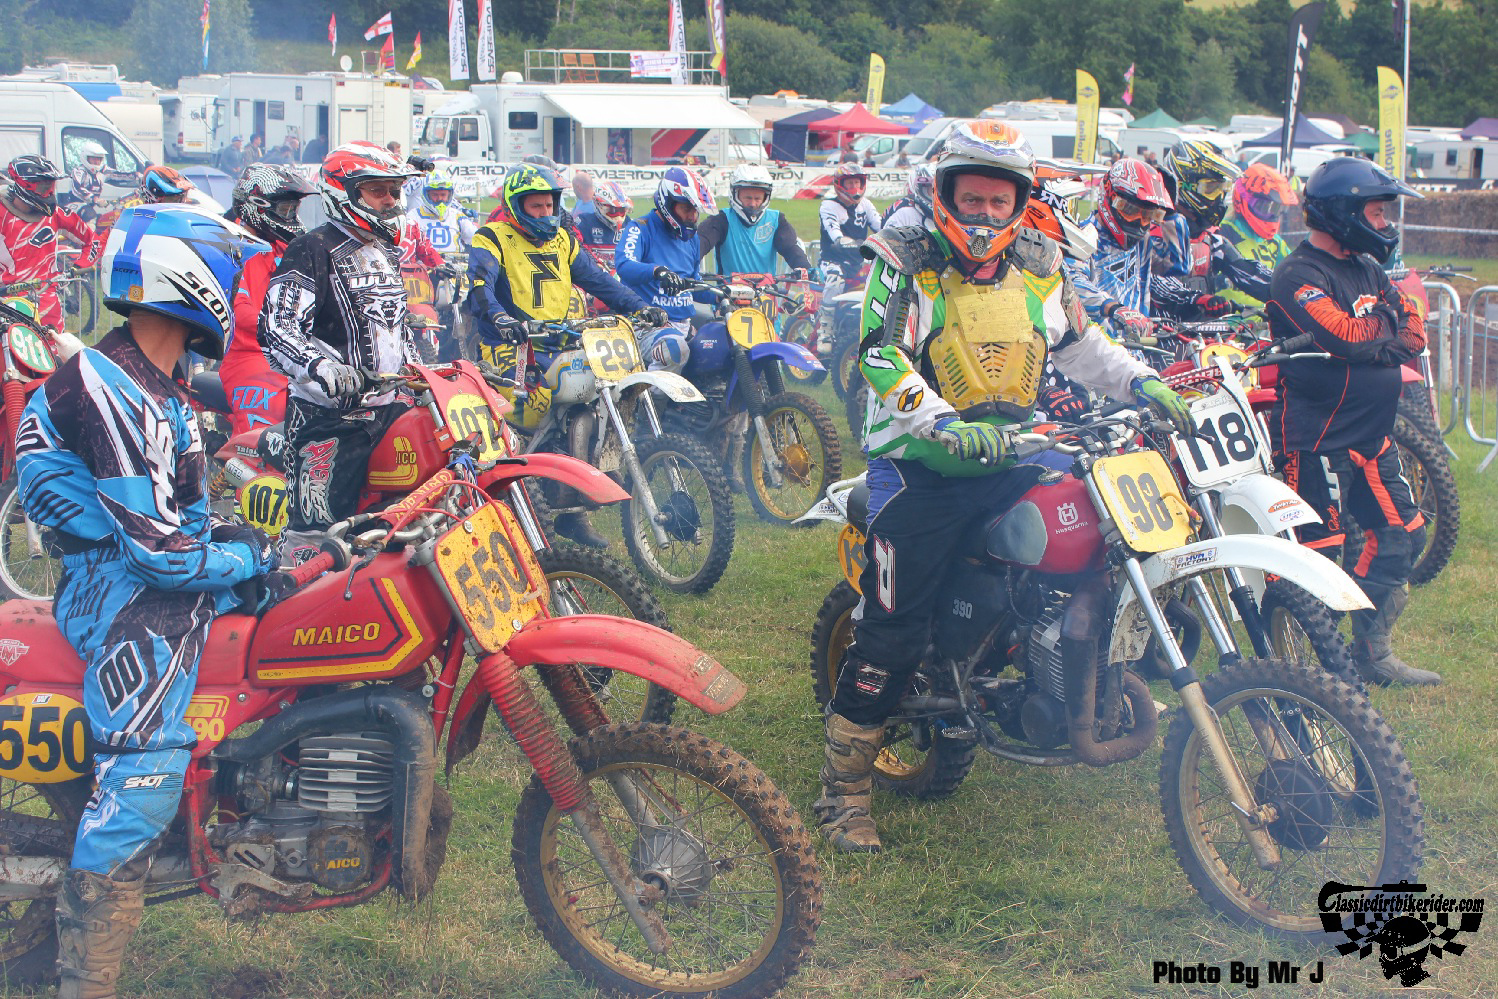 king of the castle 2015 photos Farleigh Castle twinshock motocross classicdirtbikerider.com 15